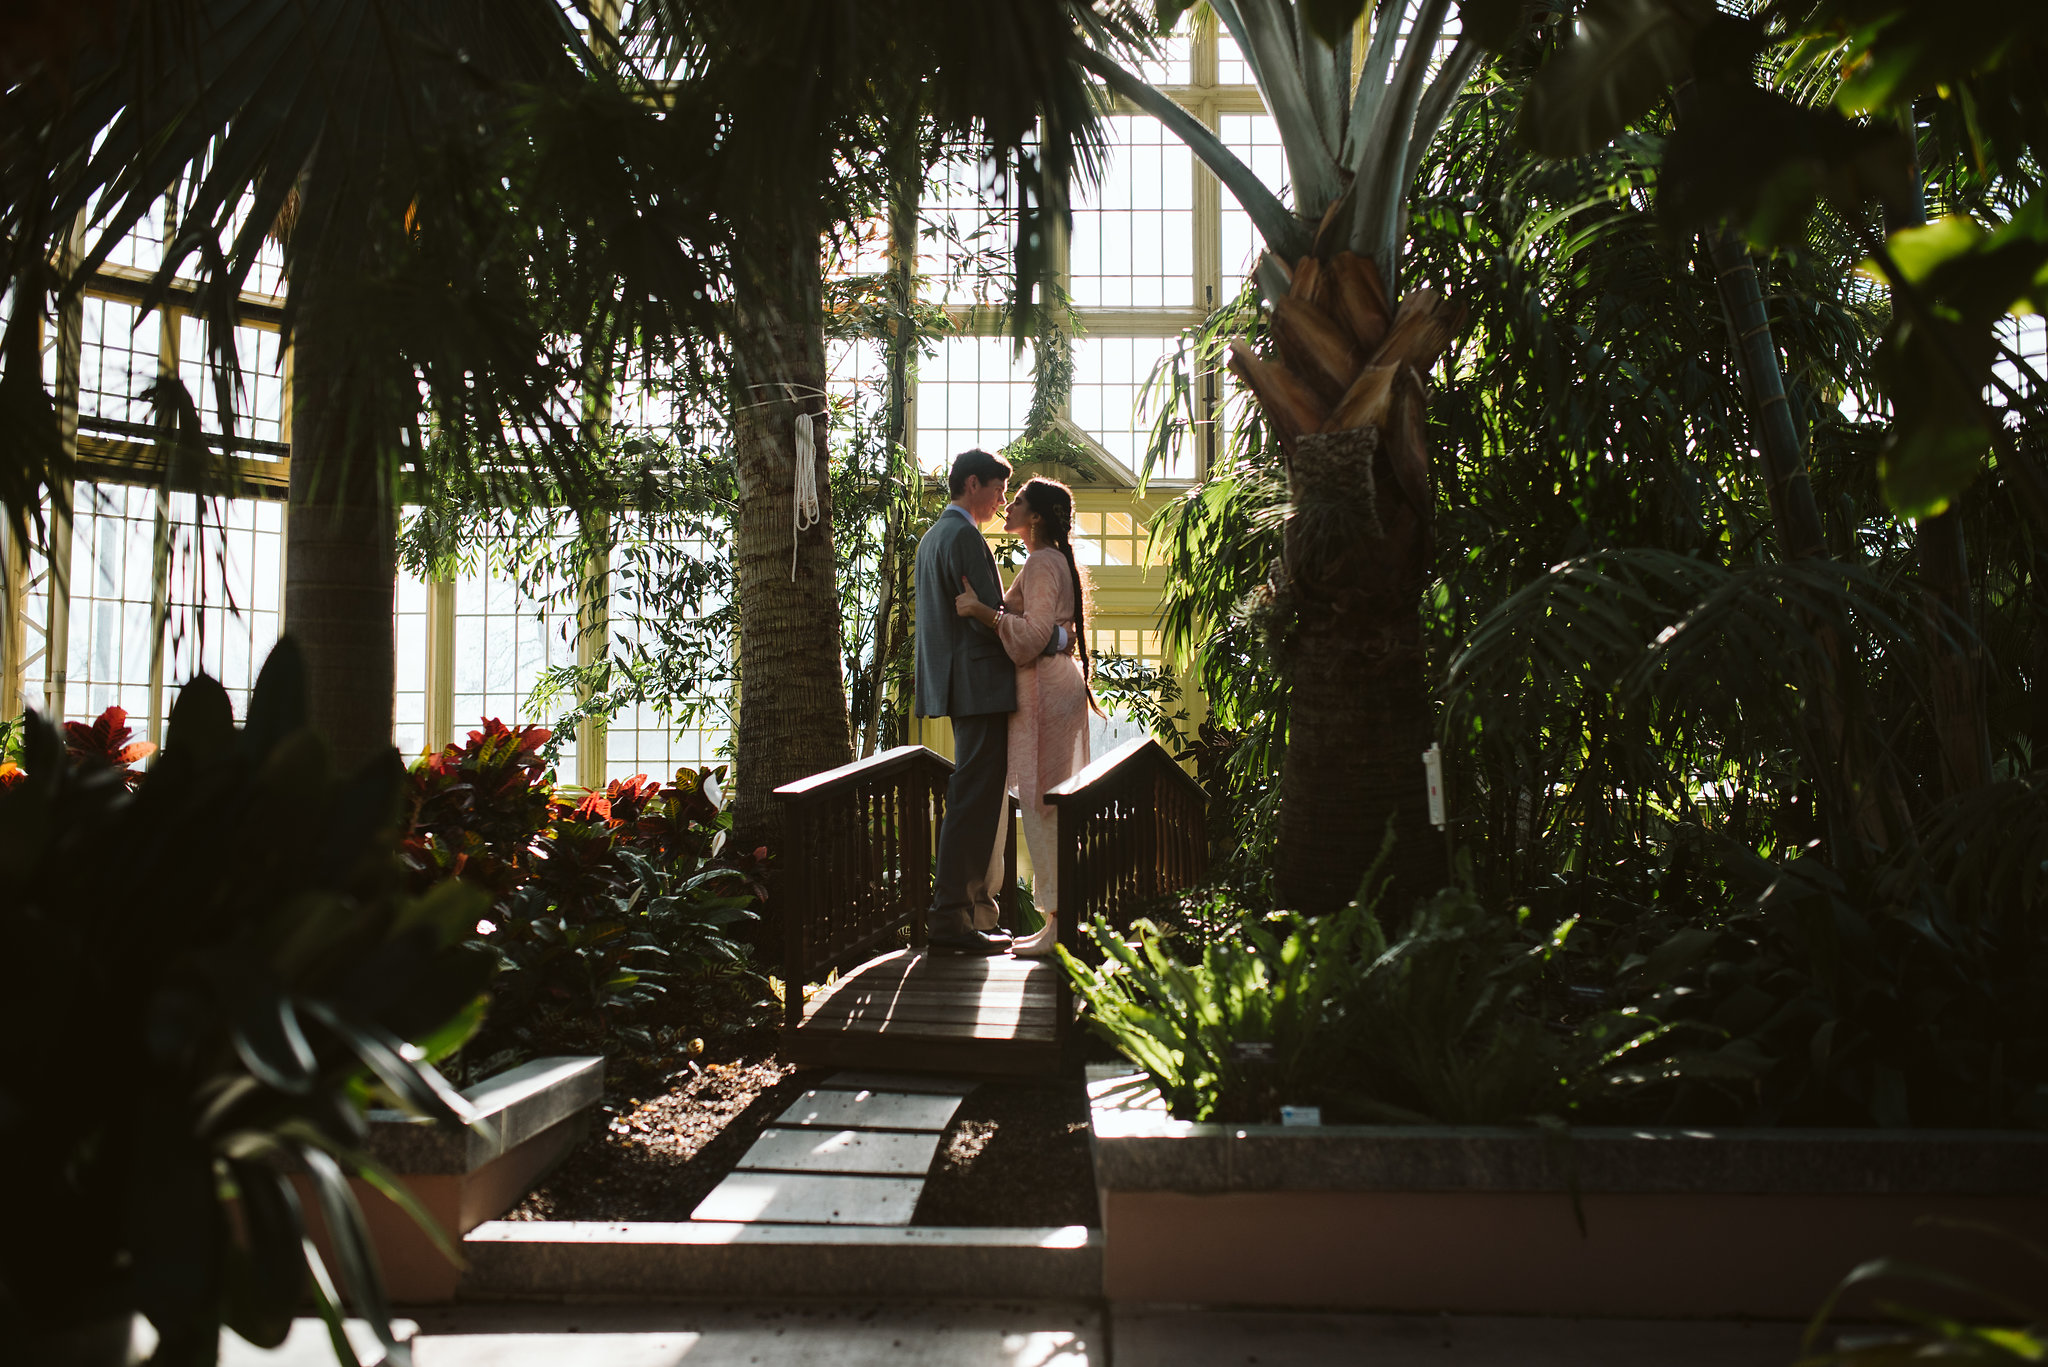 Weekday Wedding, Baltimore, Rawlings Conservatory, Greenhouse, Maryland Wedding Photographer, Indian American, Nature, Romantic, Garden, Bride and Groom on Bridge, Forest Photo, Candid Photo